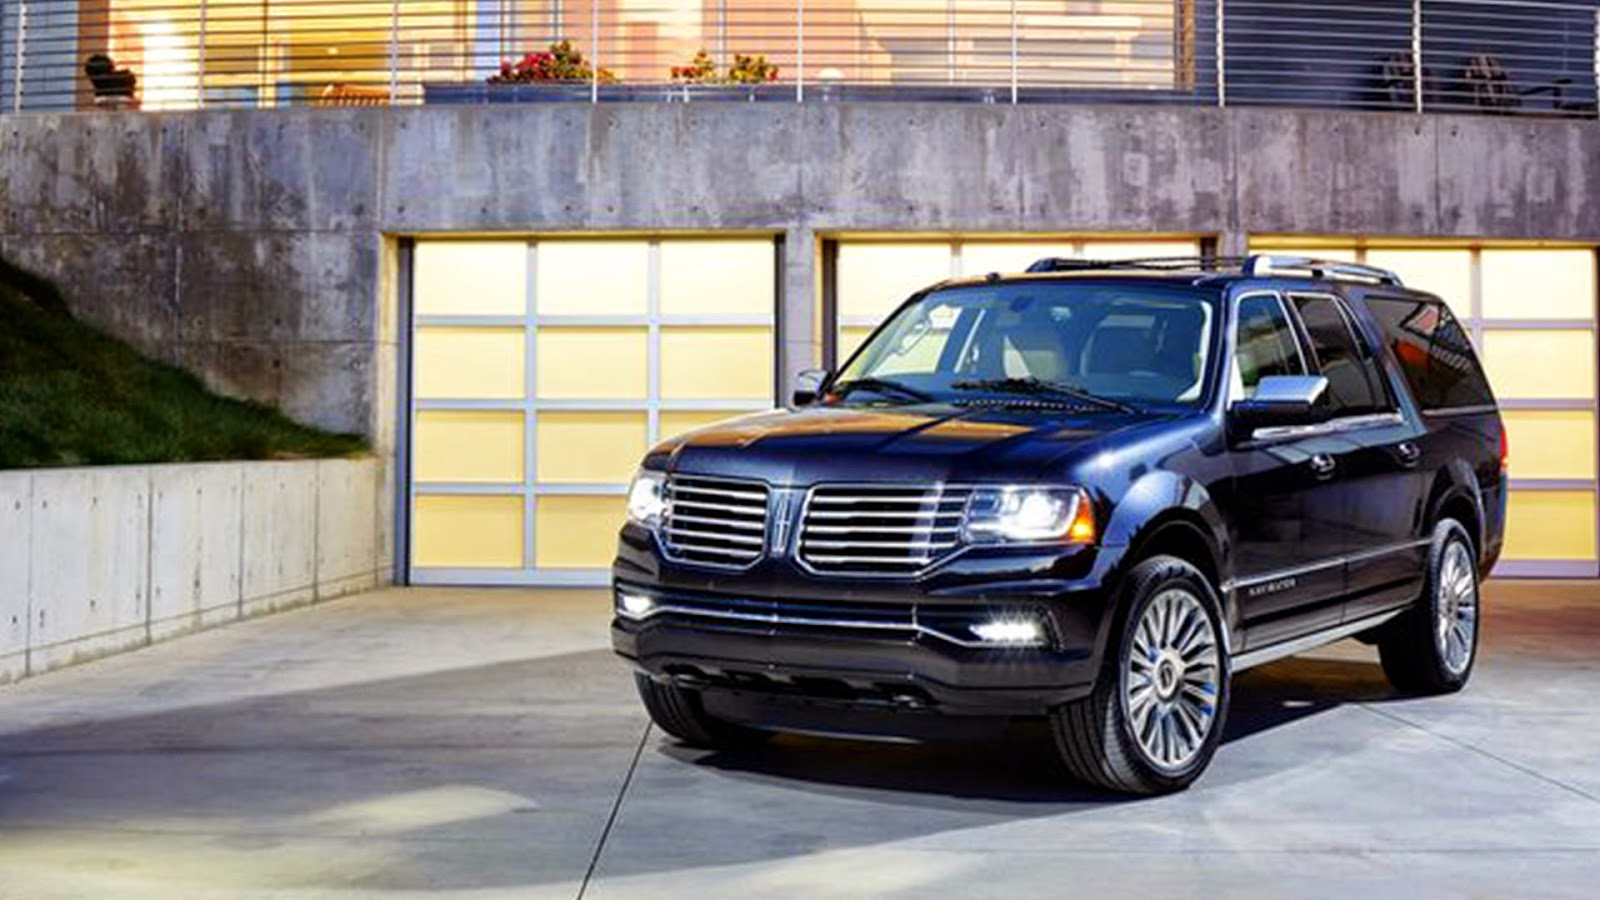 2015 Lincoln Navigator Is One Of The Safest Vehicles On The Road